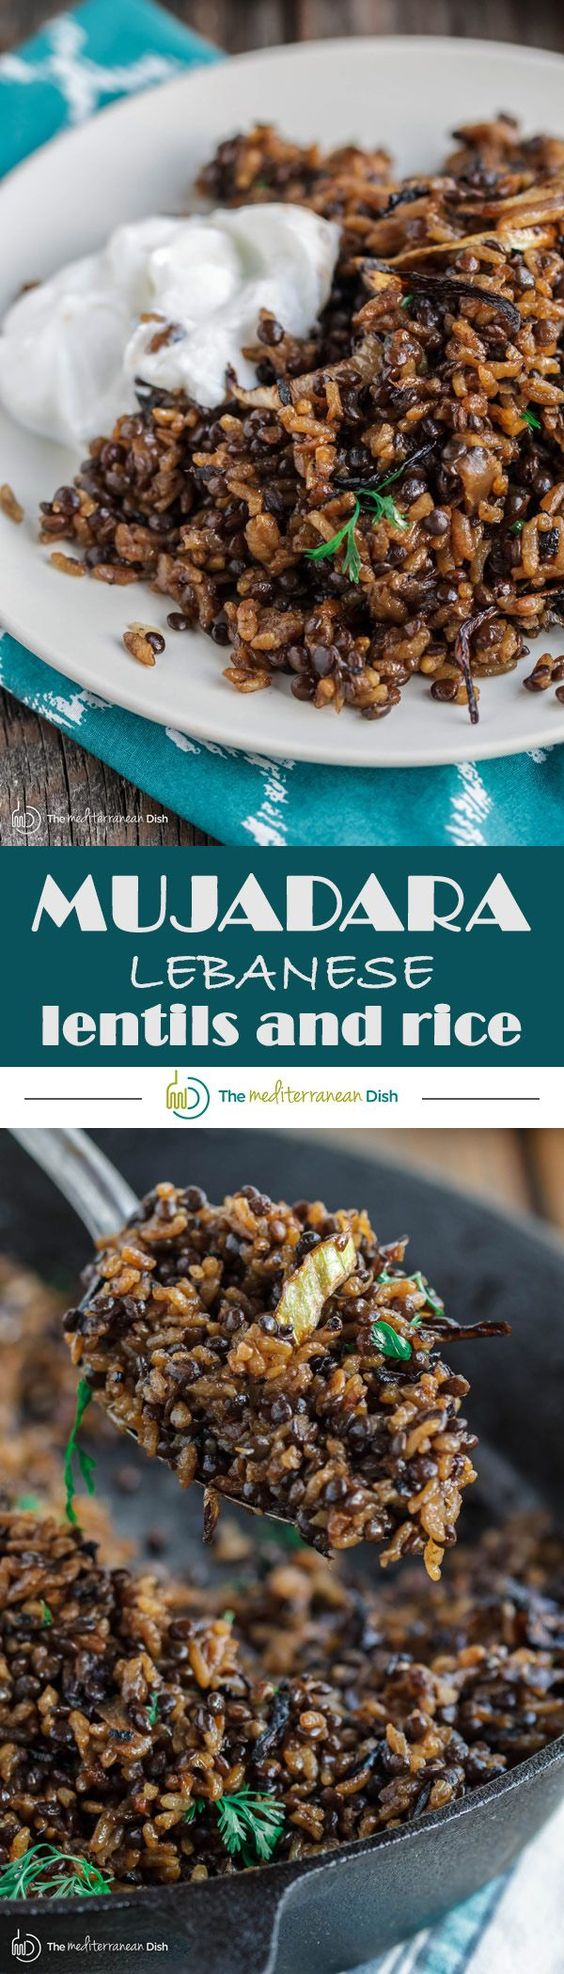 Mujadara: Lentils and Rice with Crispy Onions   The Mediterranean Dish. The intense flavor of this humble Middle Eastern dish will surprise you! A healthy and hearty vegan and gluten free option that everyone will love! Pin it now. See the step-by-step with photos at The Mediterranean Dish